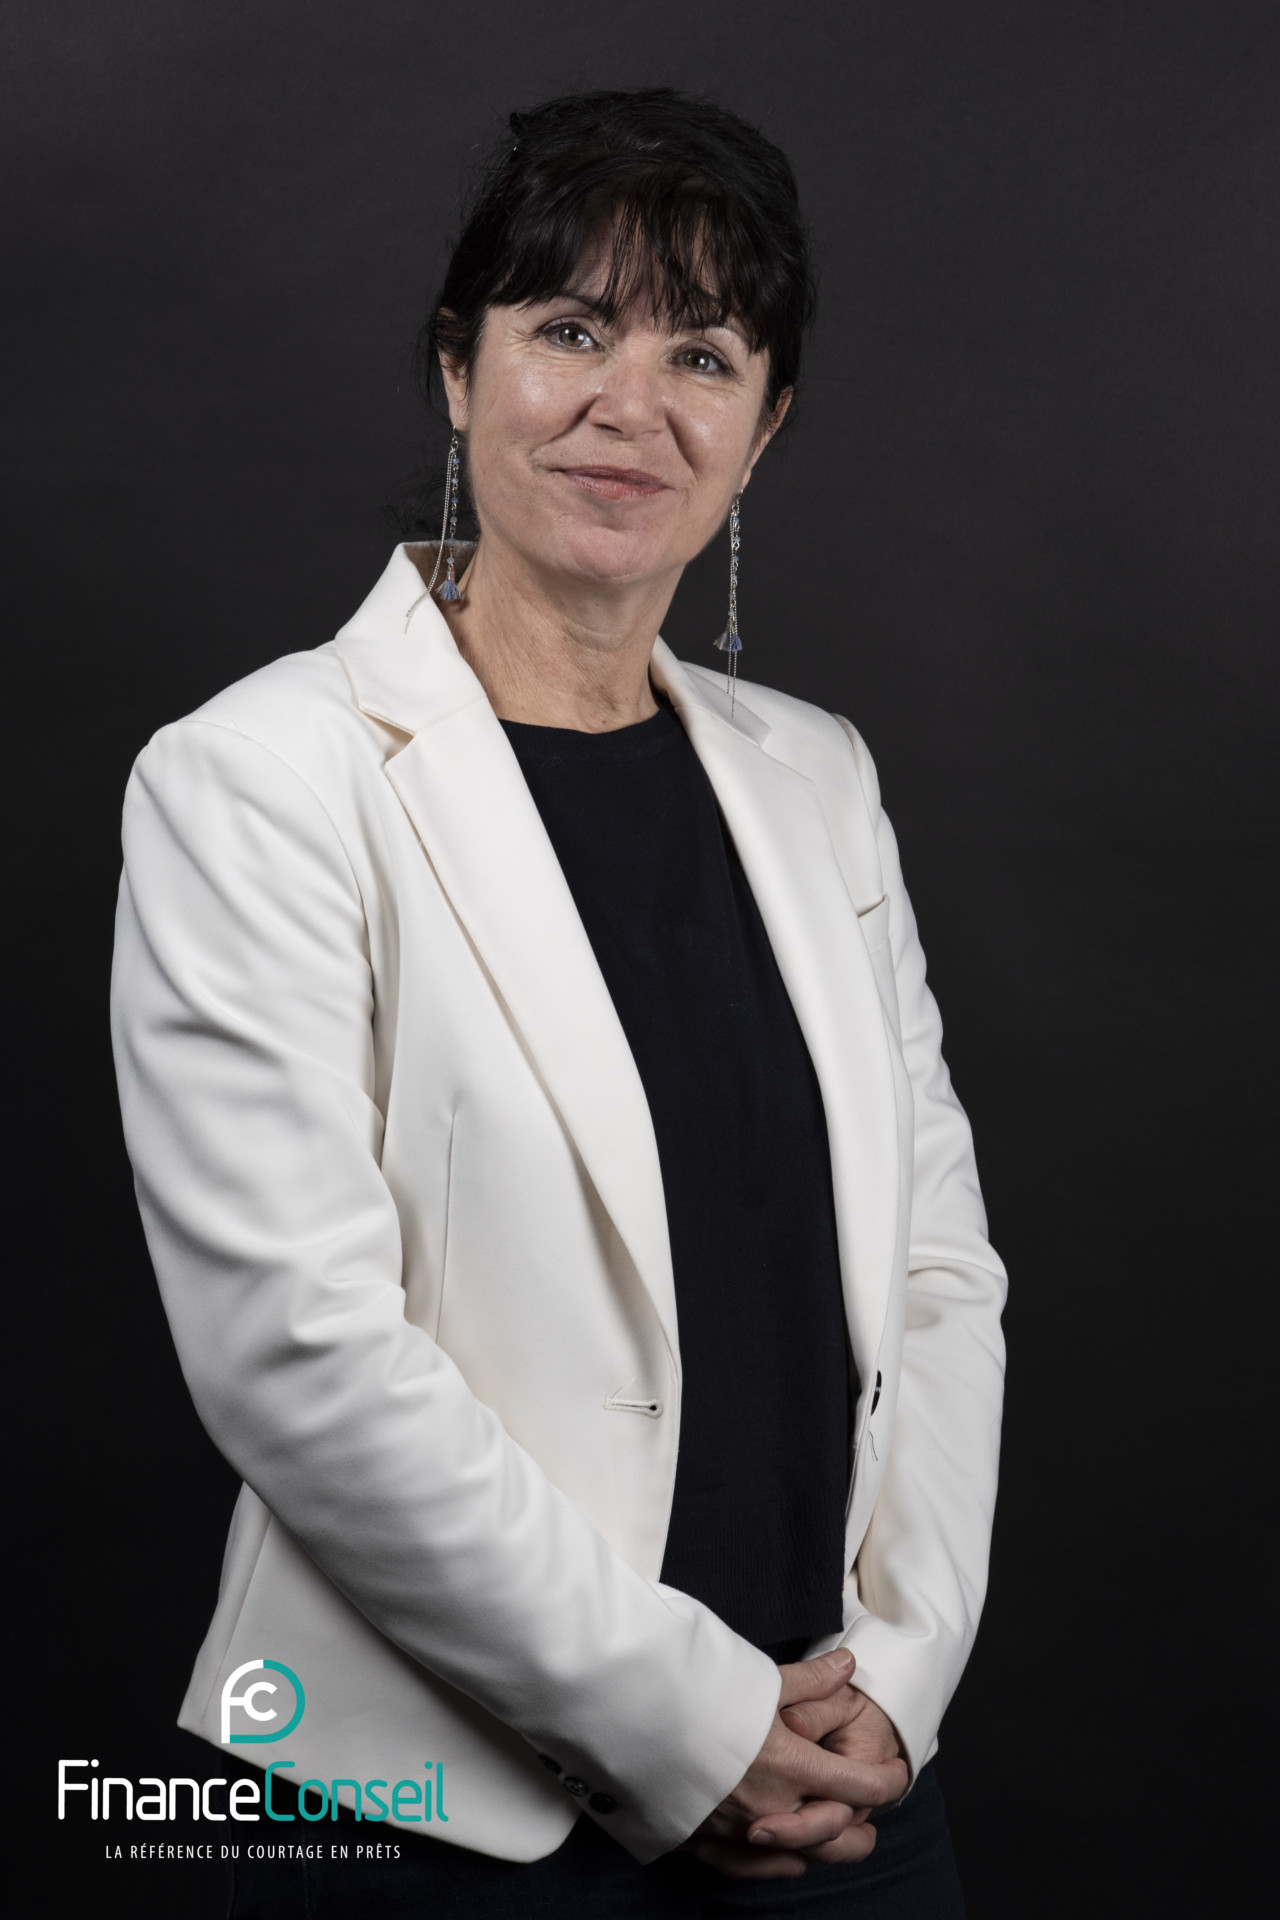 Nathalie BOURGEOIS - Assistance commerciale